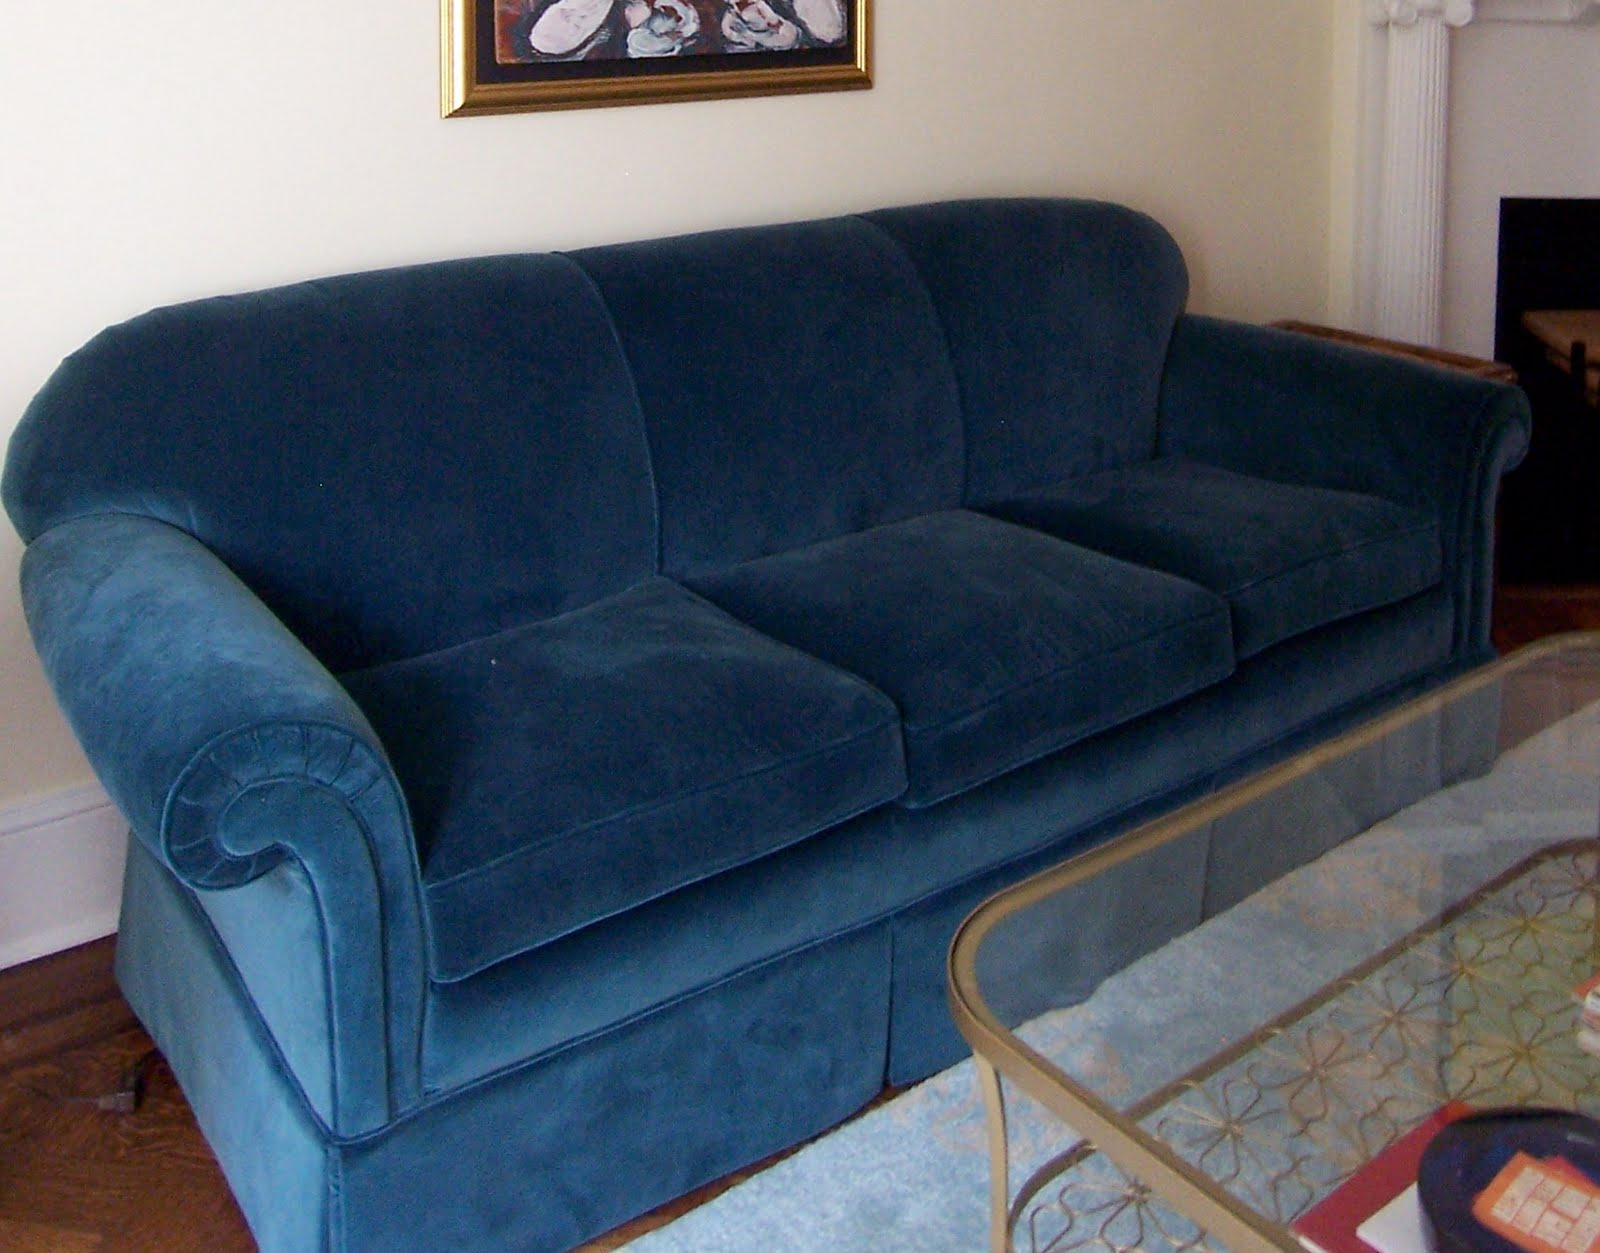 blue velvet sofa upholstery. Reupholstering furniture is expensive   bossy color Annie Elliott